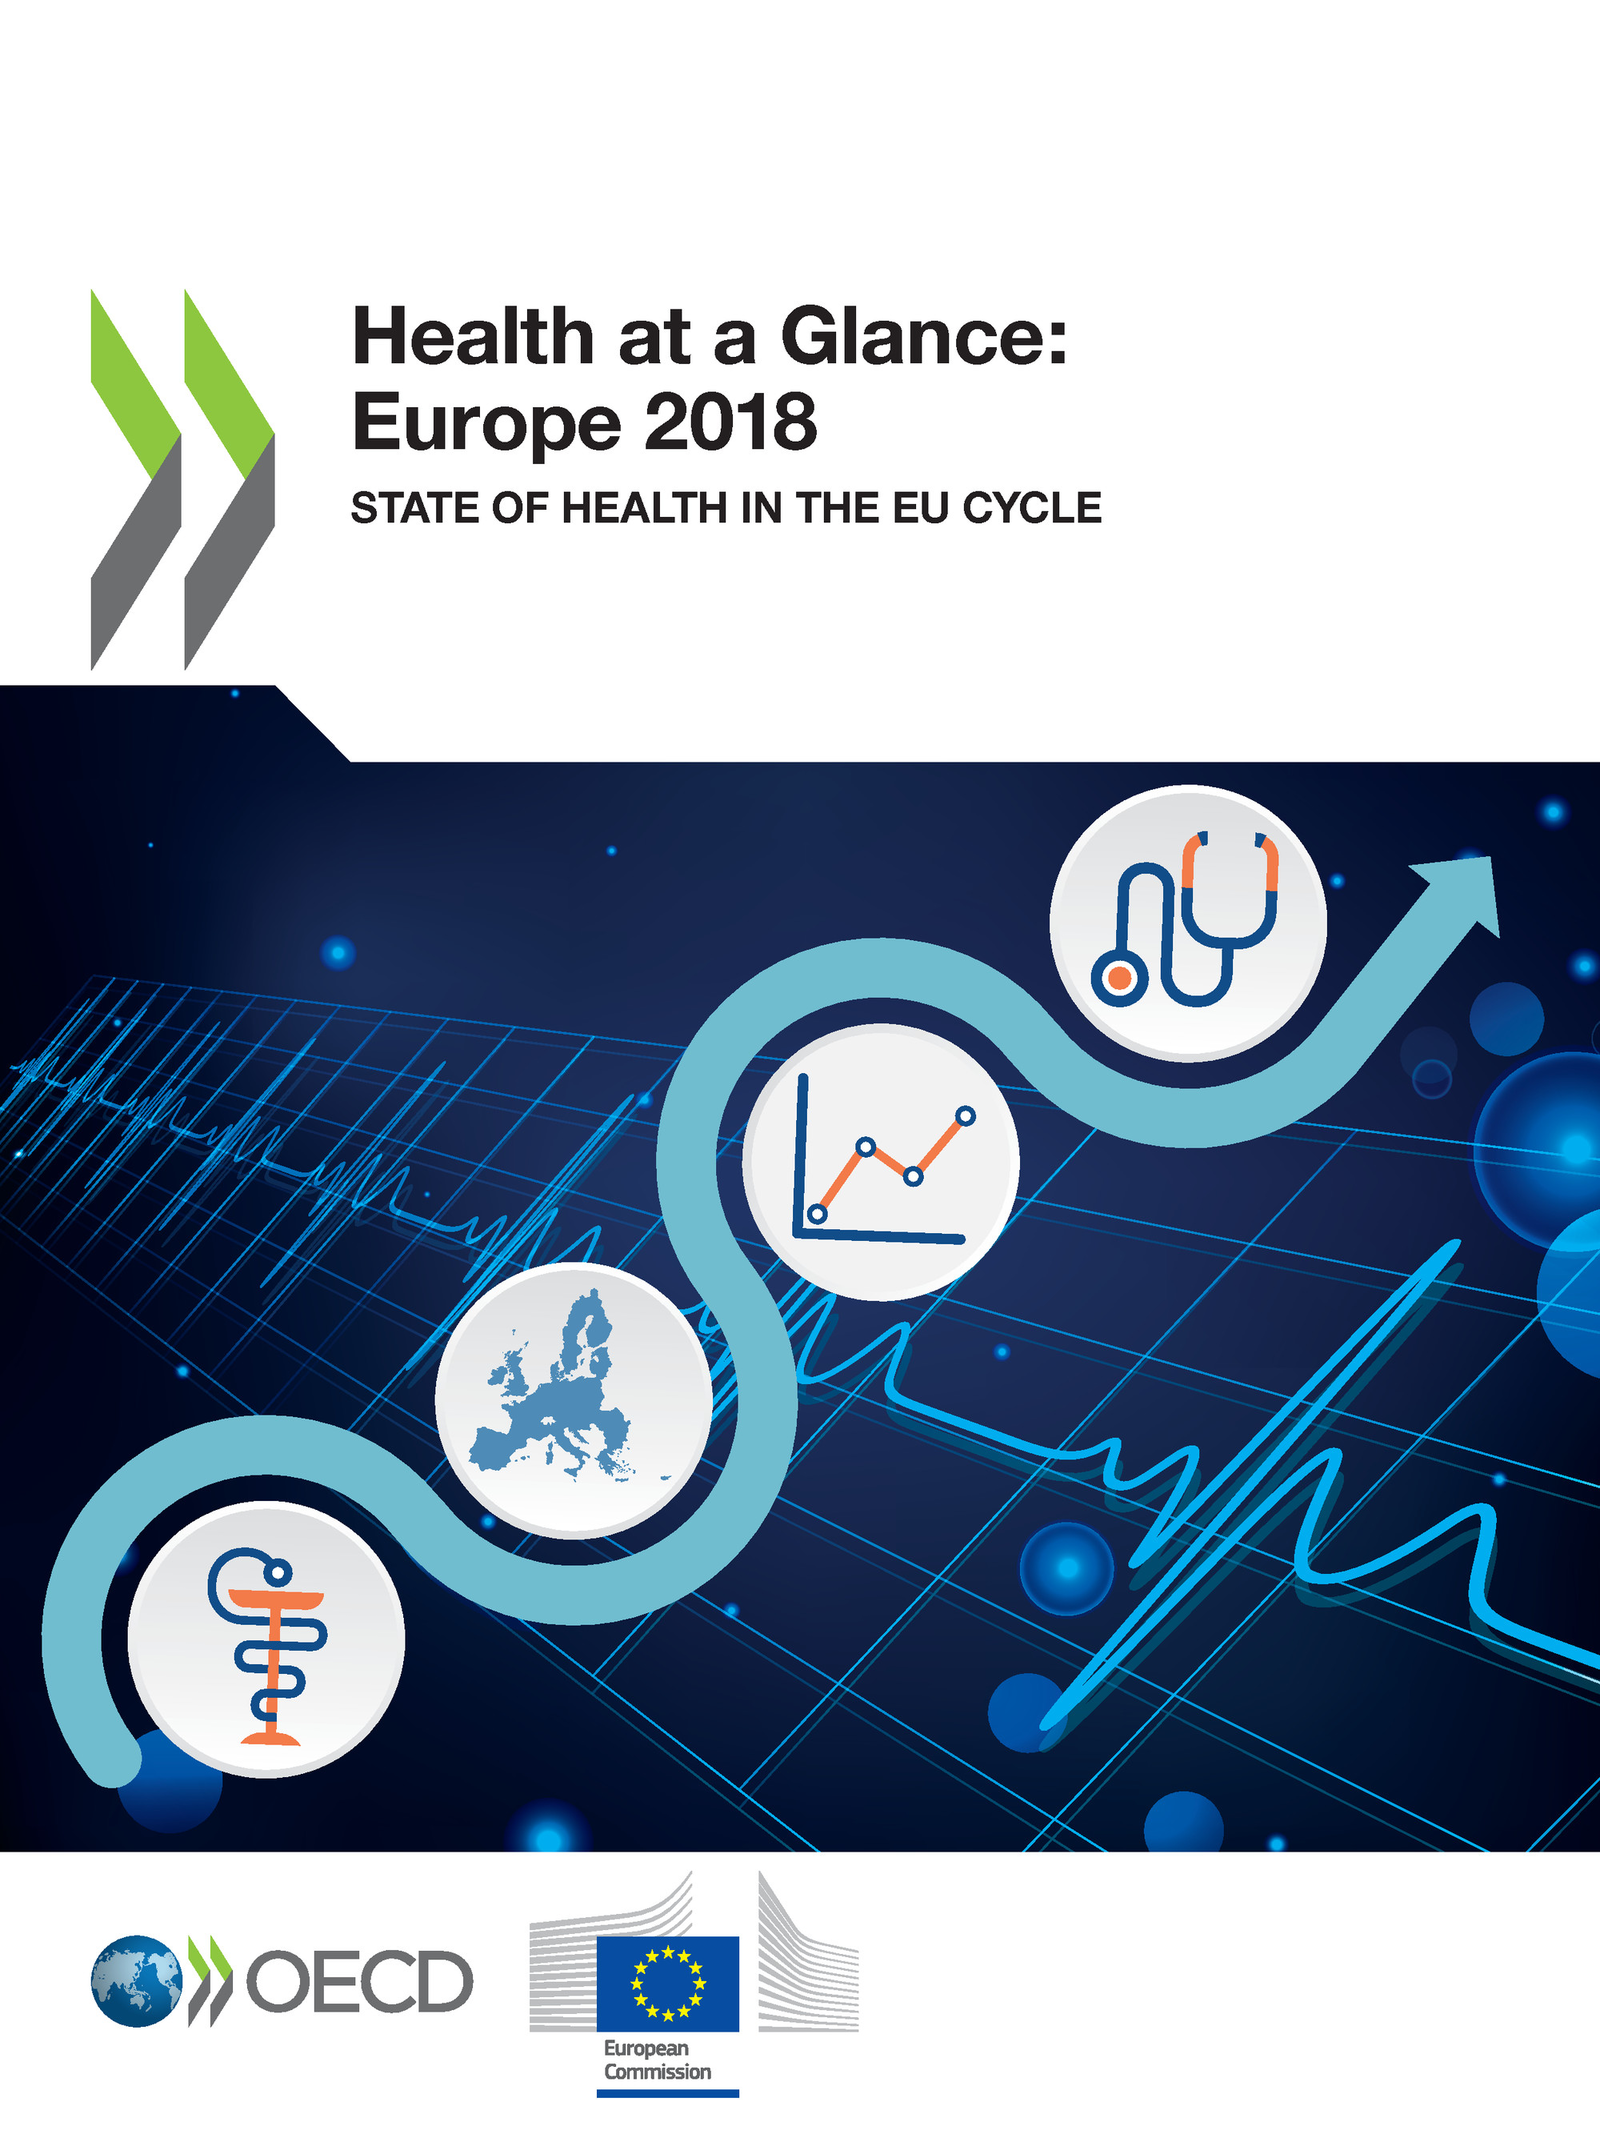 Health at a Glance: Europe 2018